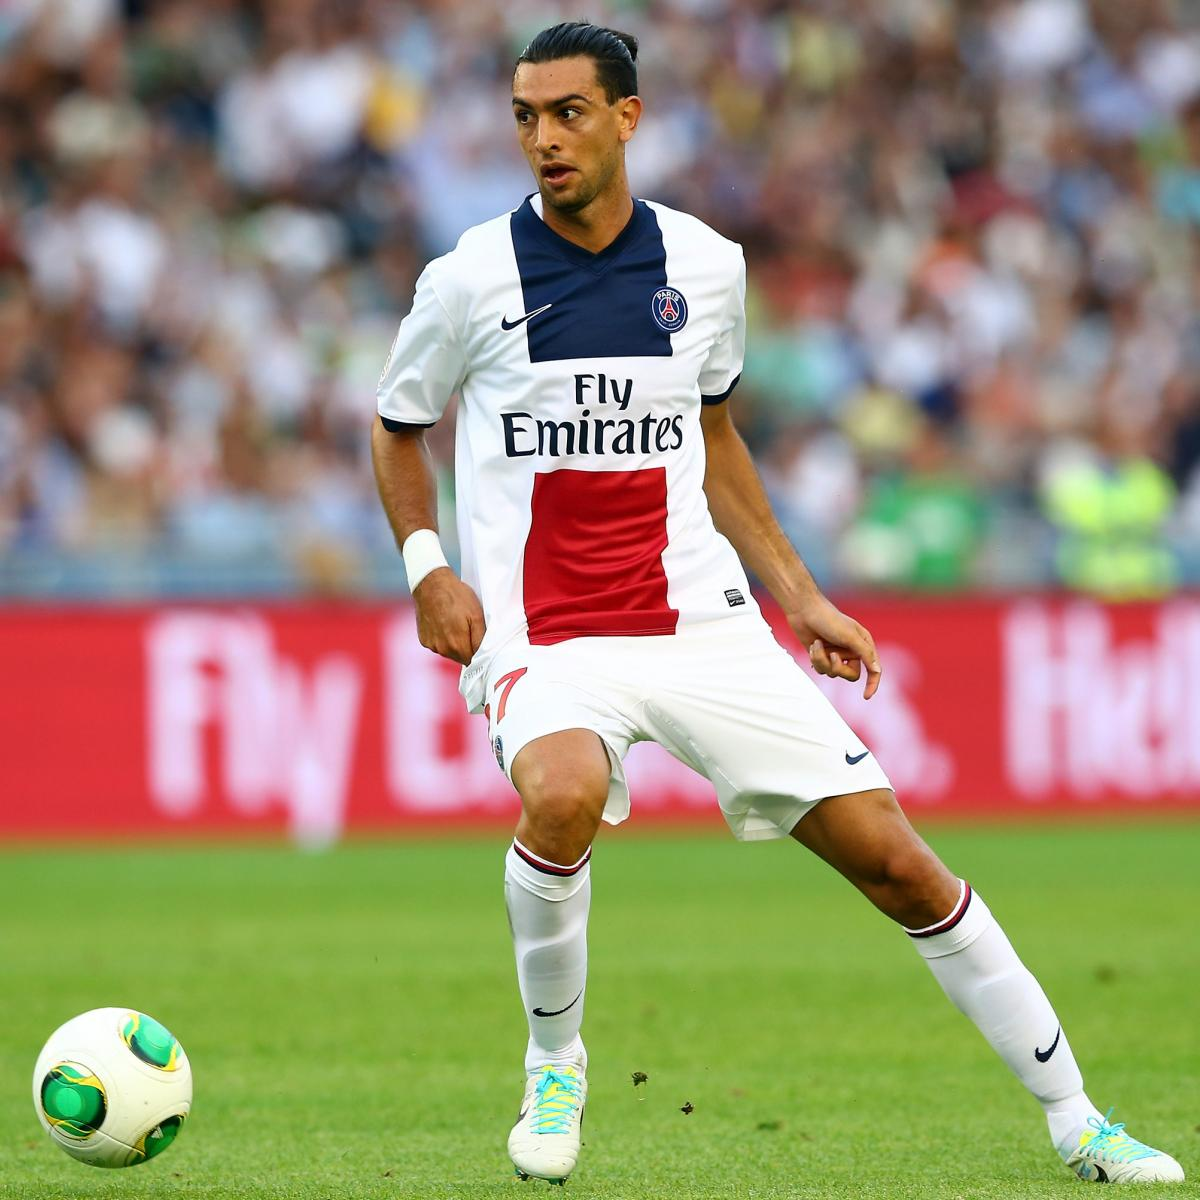 Javier Pastore: Is The Time Right For Javier Pastore To Leave PSG For The